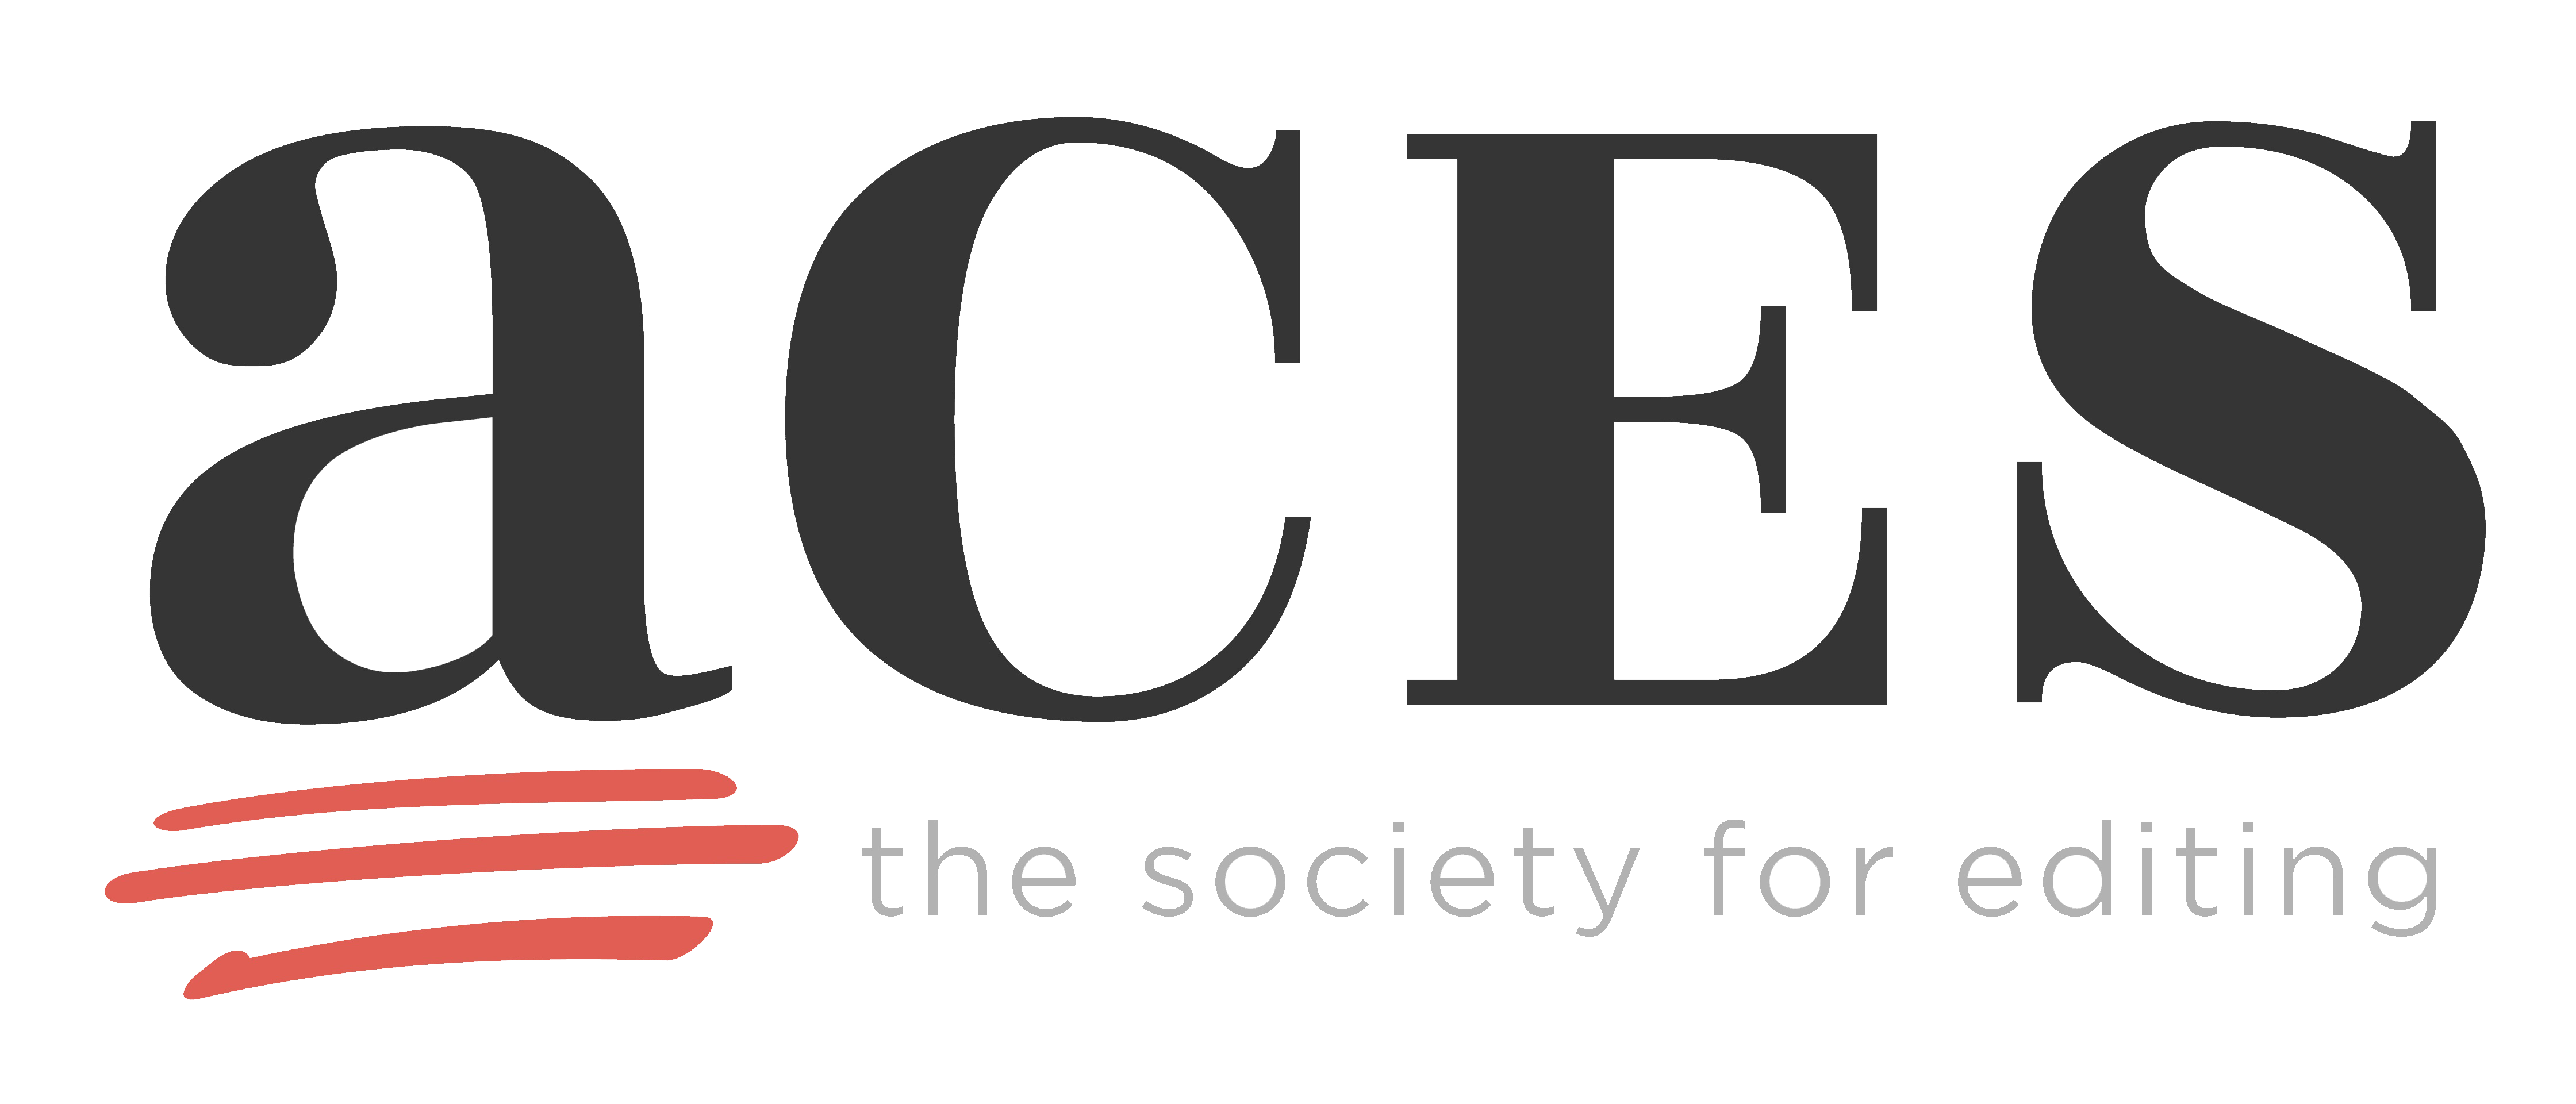 ACES: The Society for Editing